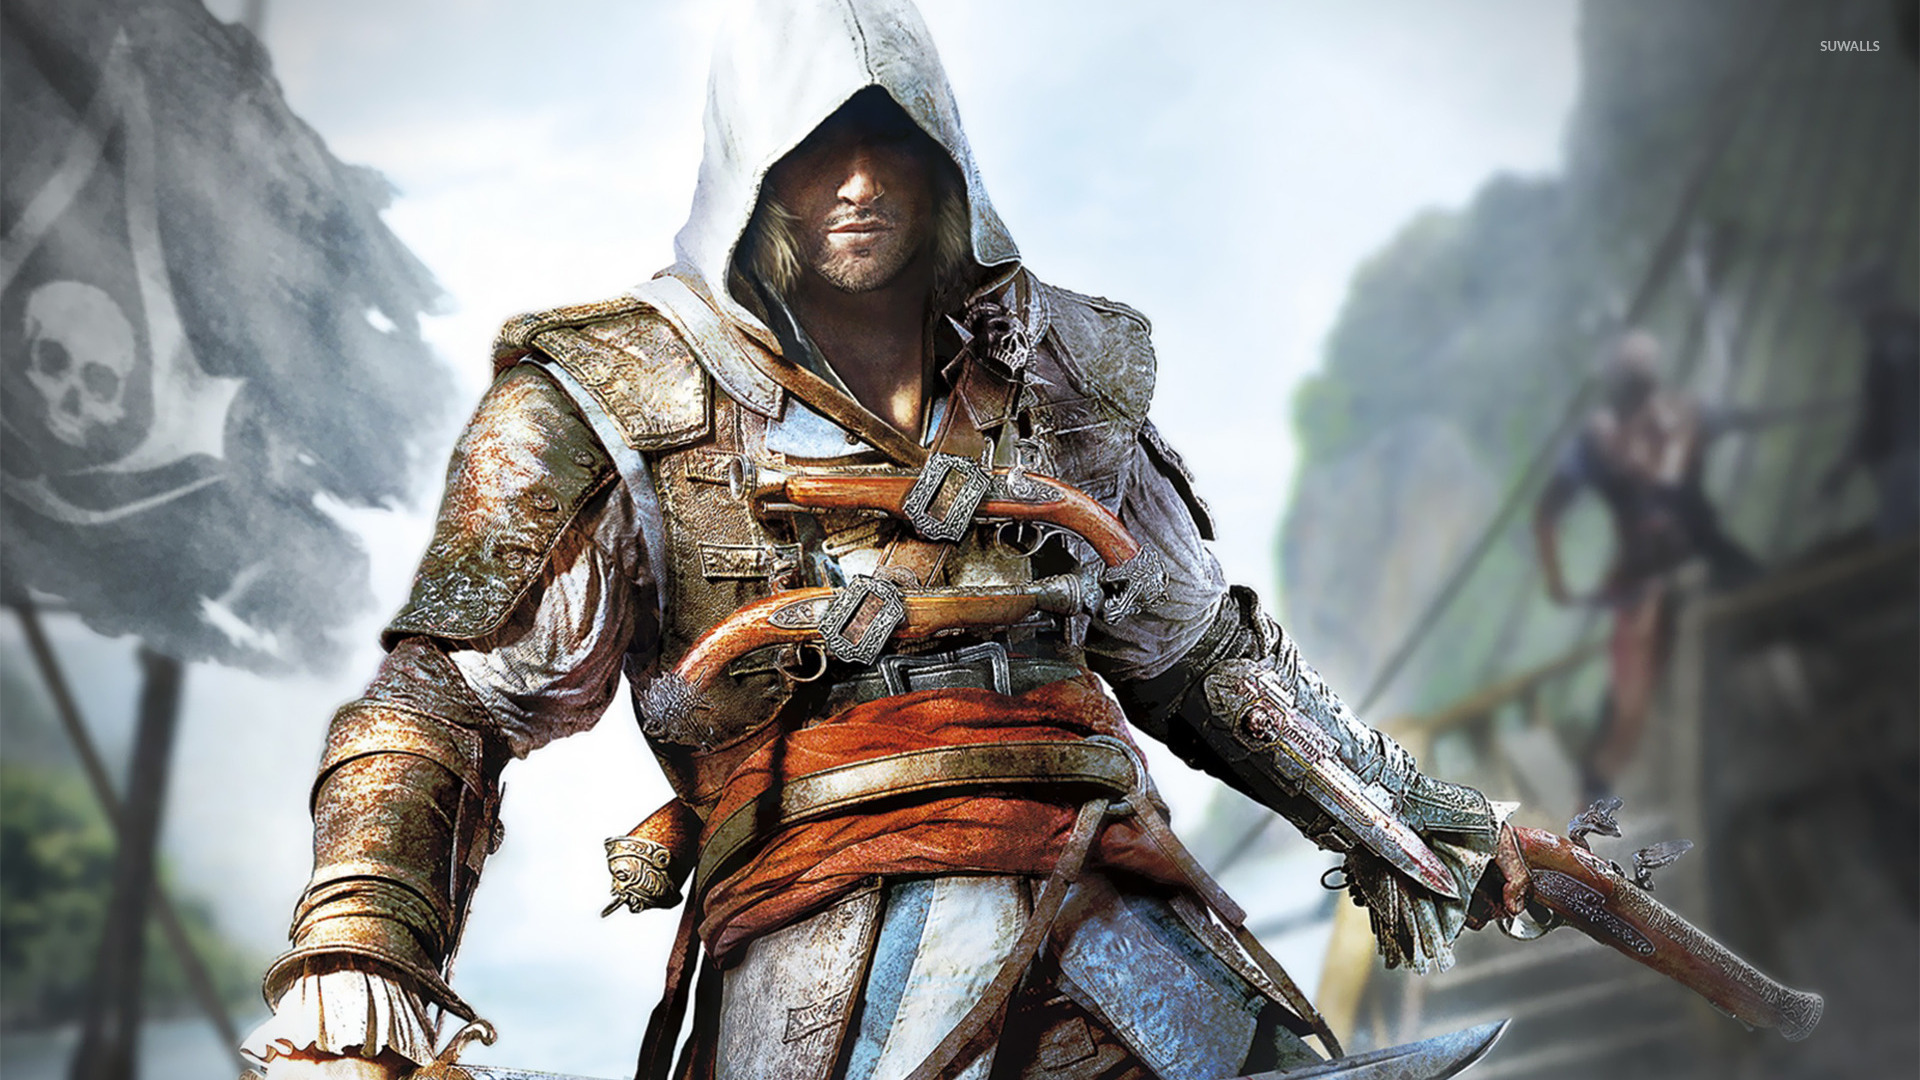 Download The Assassin S Creed Iv Black Flag Wallpapers: Assassin's Creed IV: Black Flag [6] Wallpaper